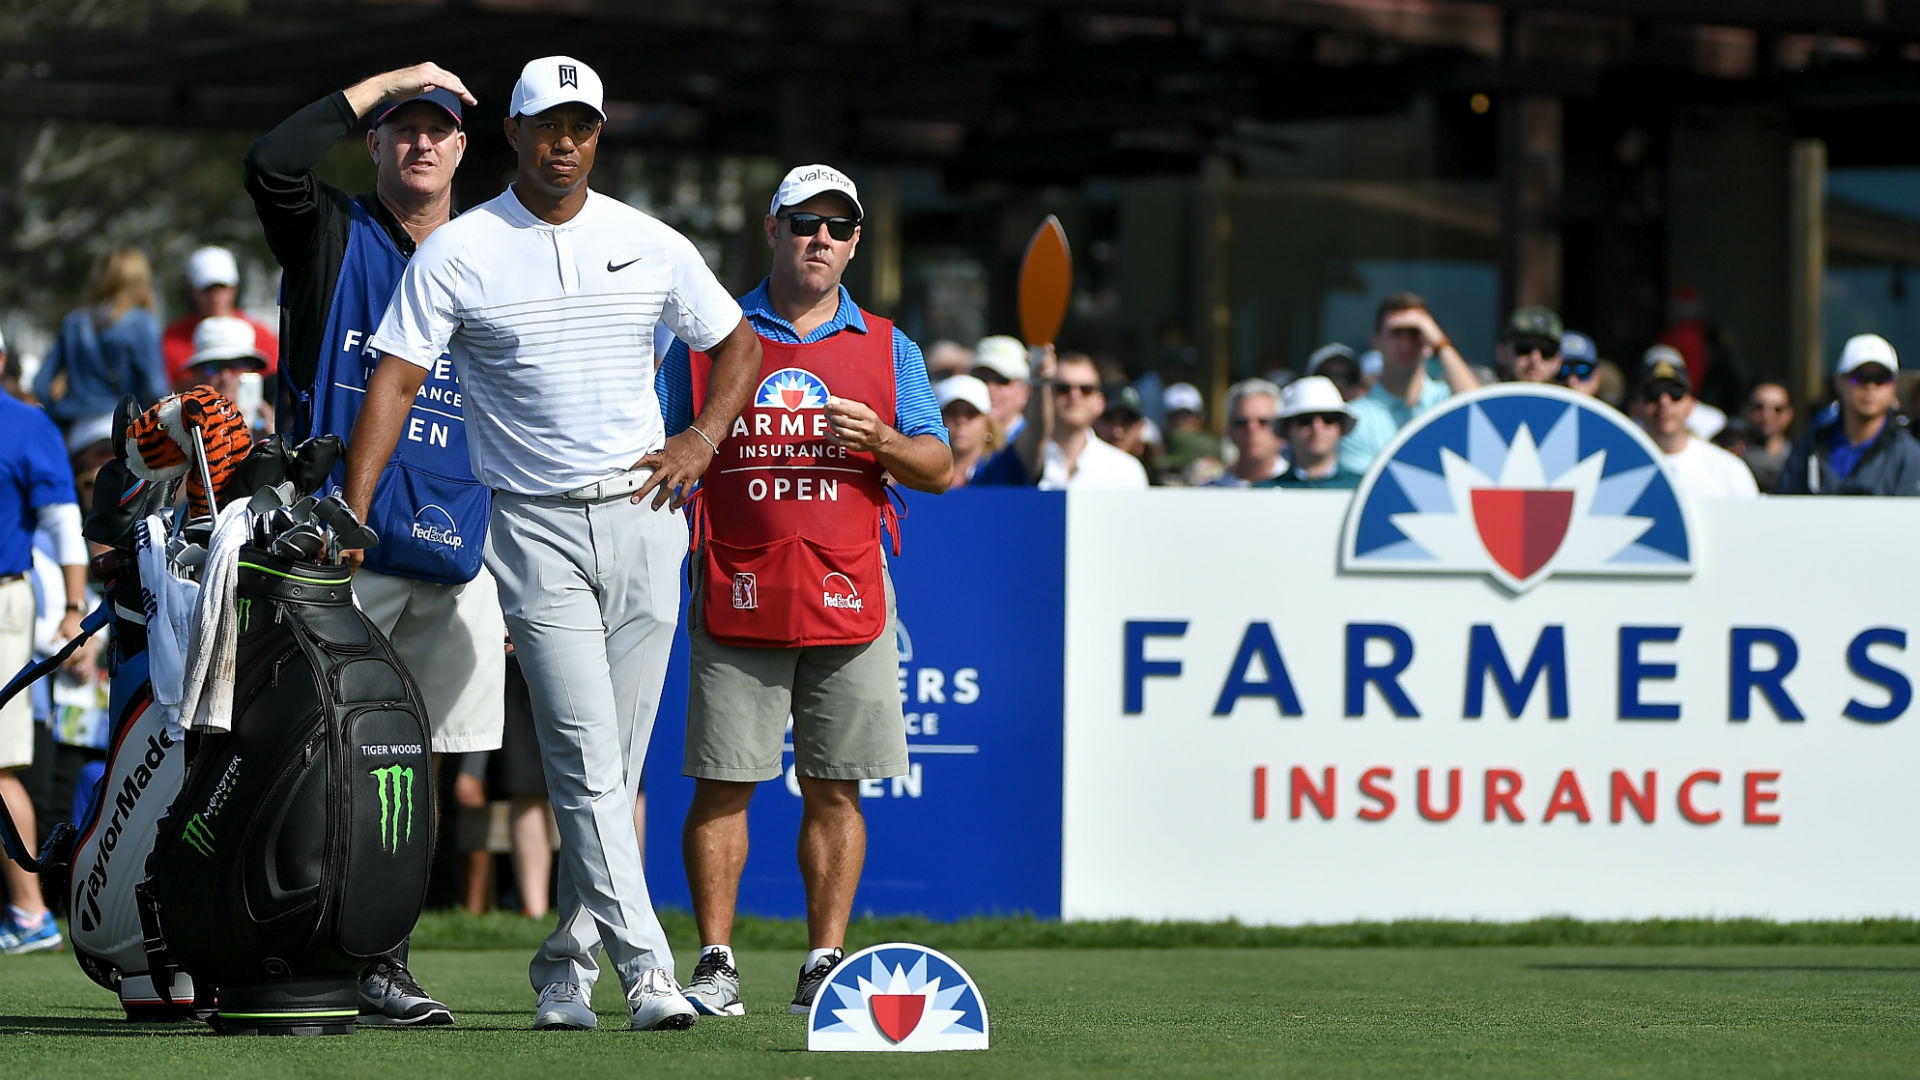 Farmers Insurance Open 2019: Tiger Woods' tee times for Round 4, TV schedule, live stream